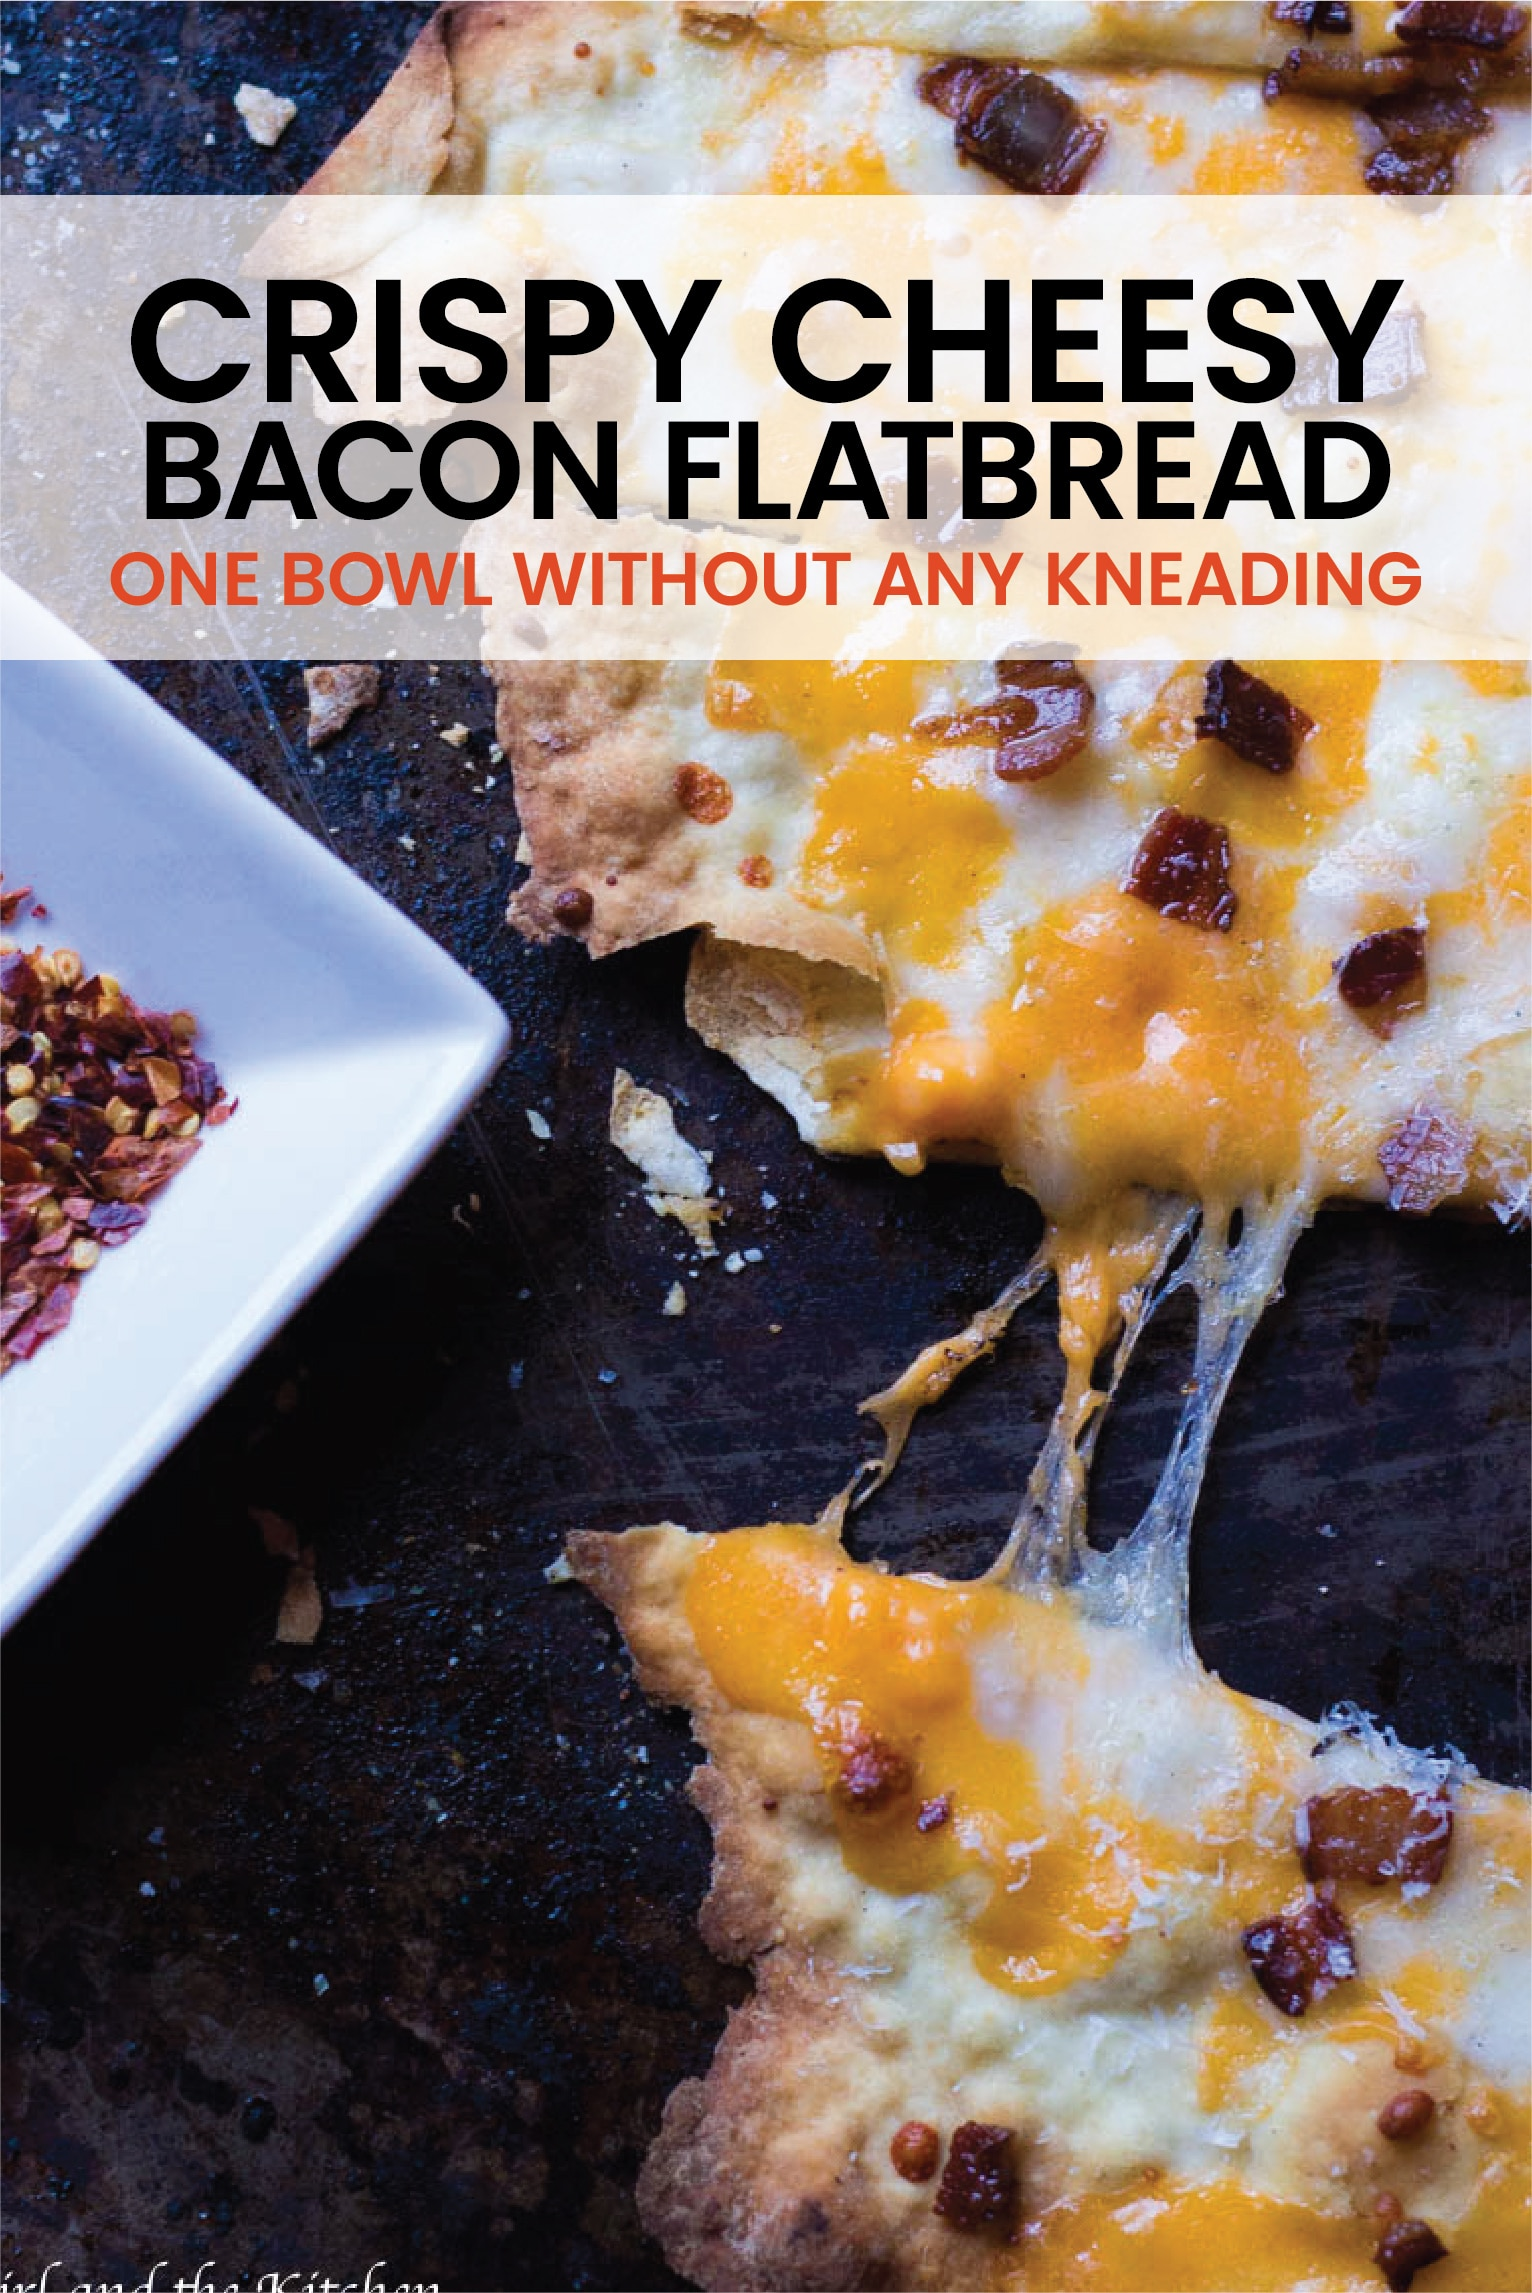 Nothing is better than the classic BBQ Chicken Pizza...well nothing except all those flavors and textures wrapped up in one neat little puff pastry package. #flatbread #cheesybacon